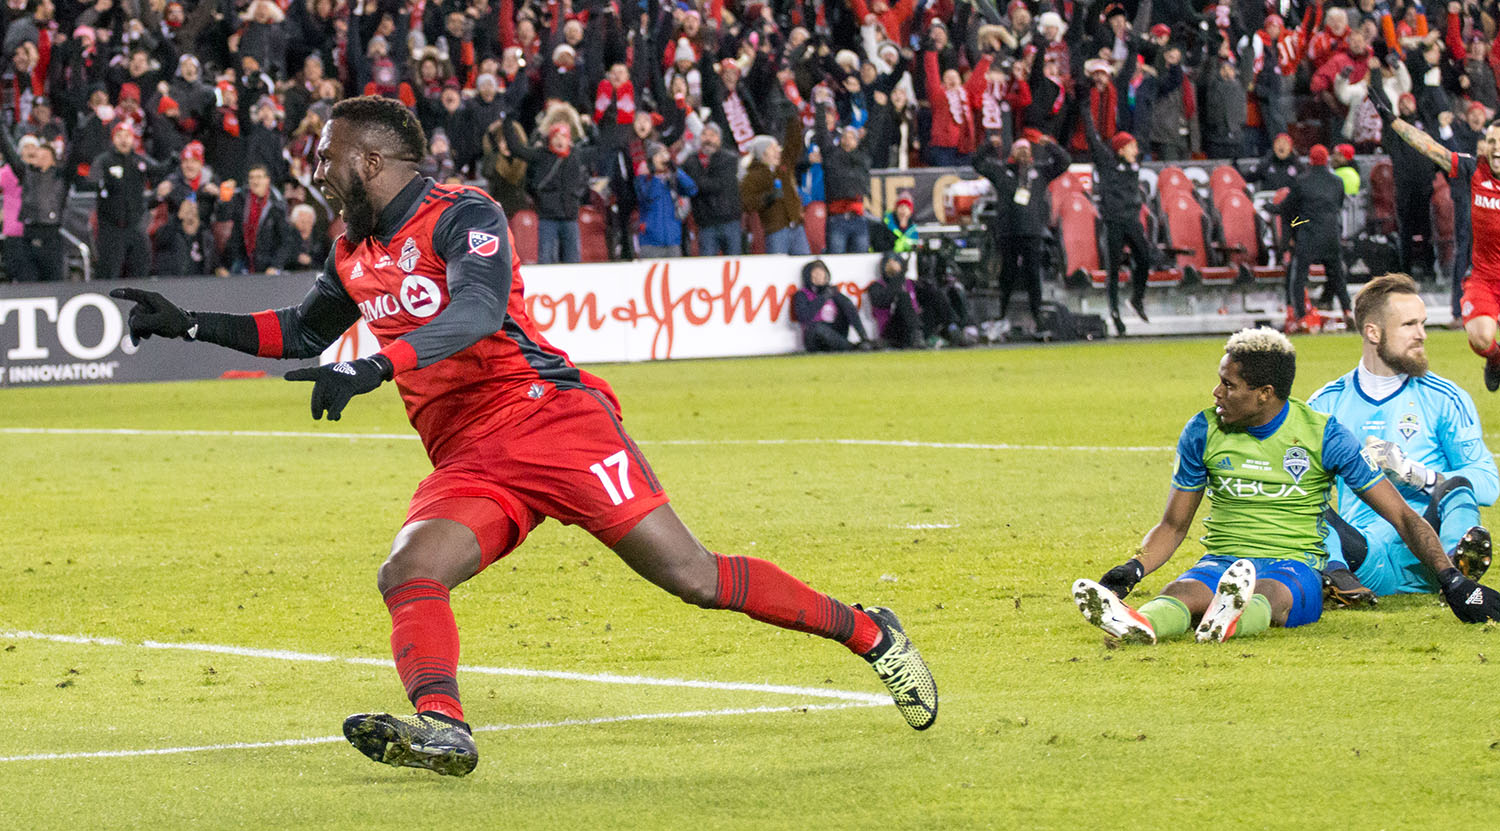 Jozy Altidore celebrating moments after the ball rolls across the goal line during the MLS Cup Final in 2017.Image by Dennis Marciniak of denMAR Media.